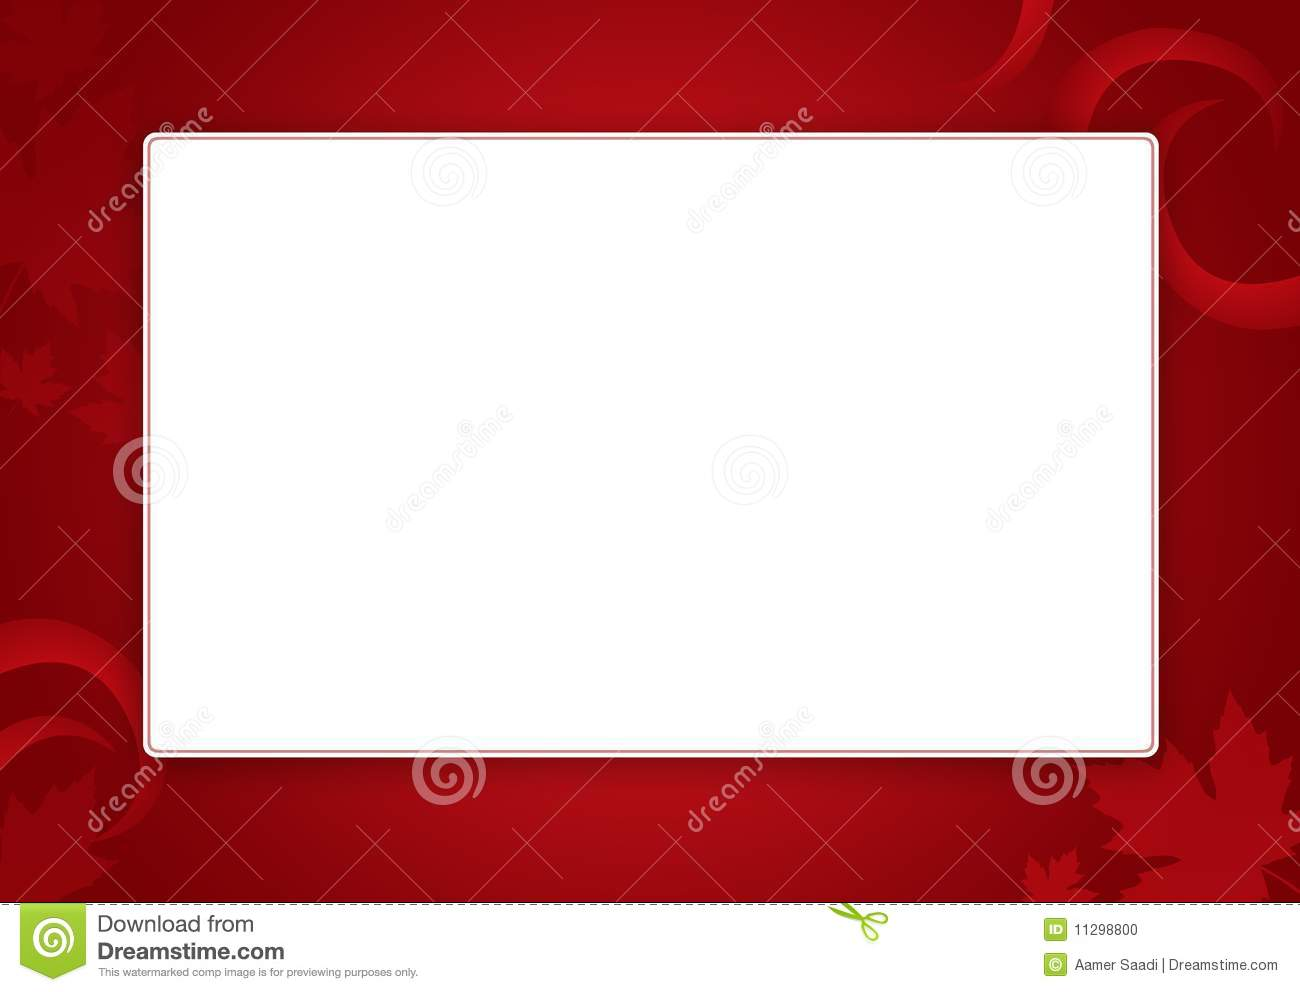 greeting card template stock illustration. illustration of wish